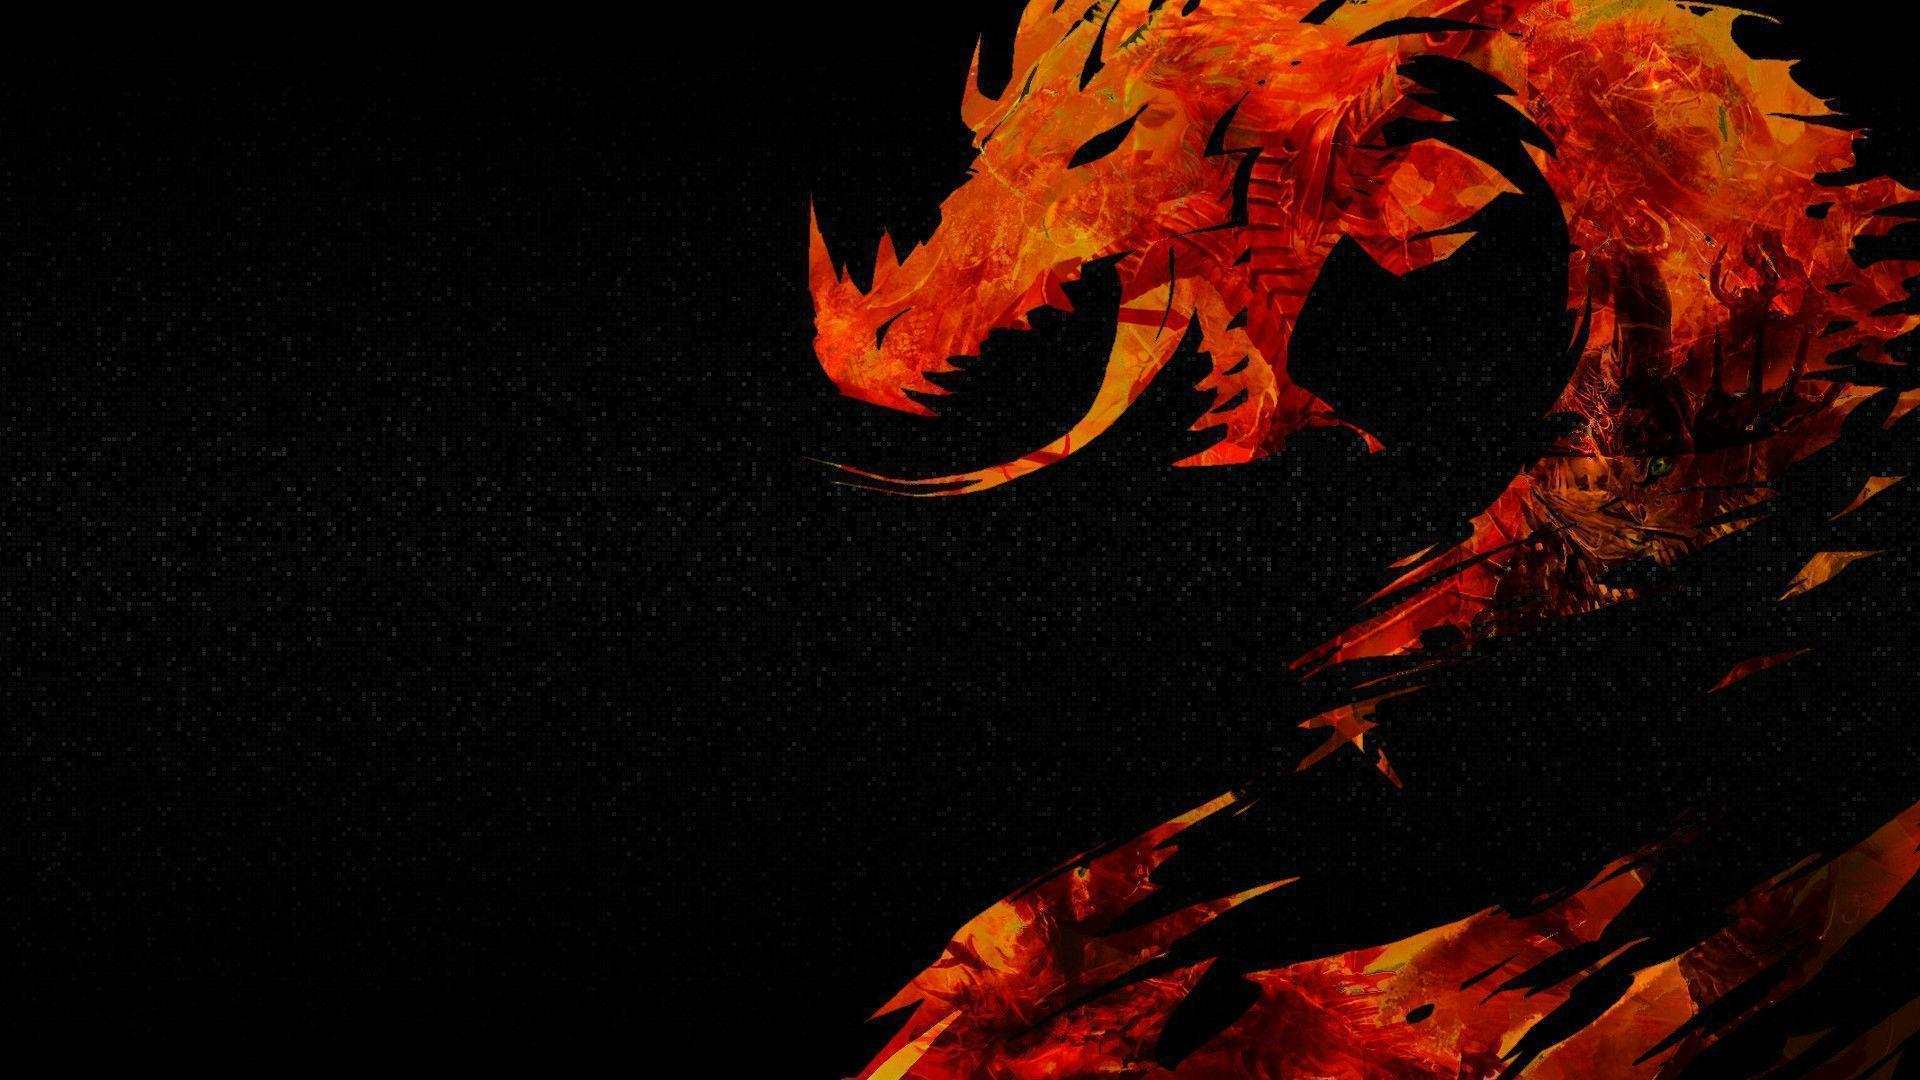 Guild Wars 2 Full Hd Wallpaper And Background Image: Guild Wars 2 Wallpapers 1920x1080